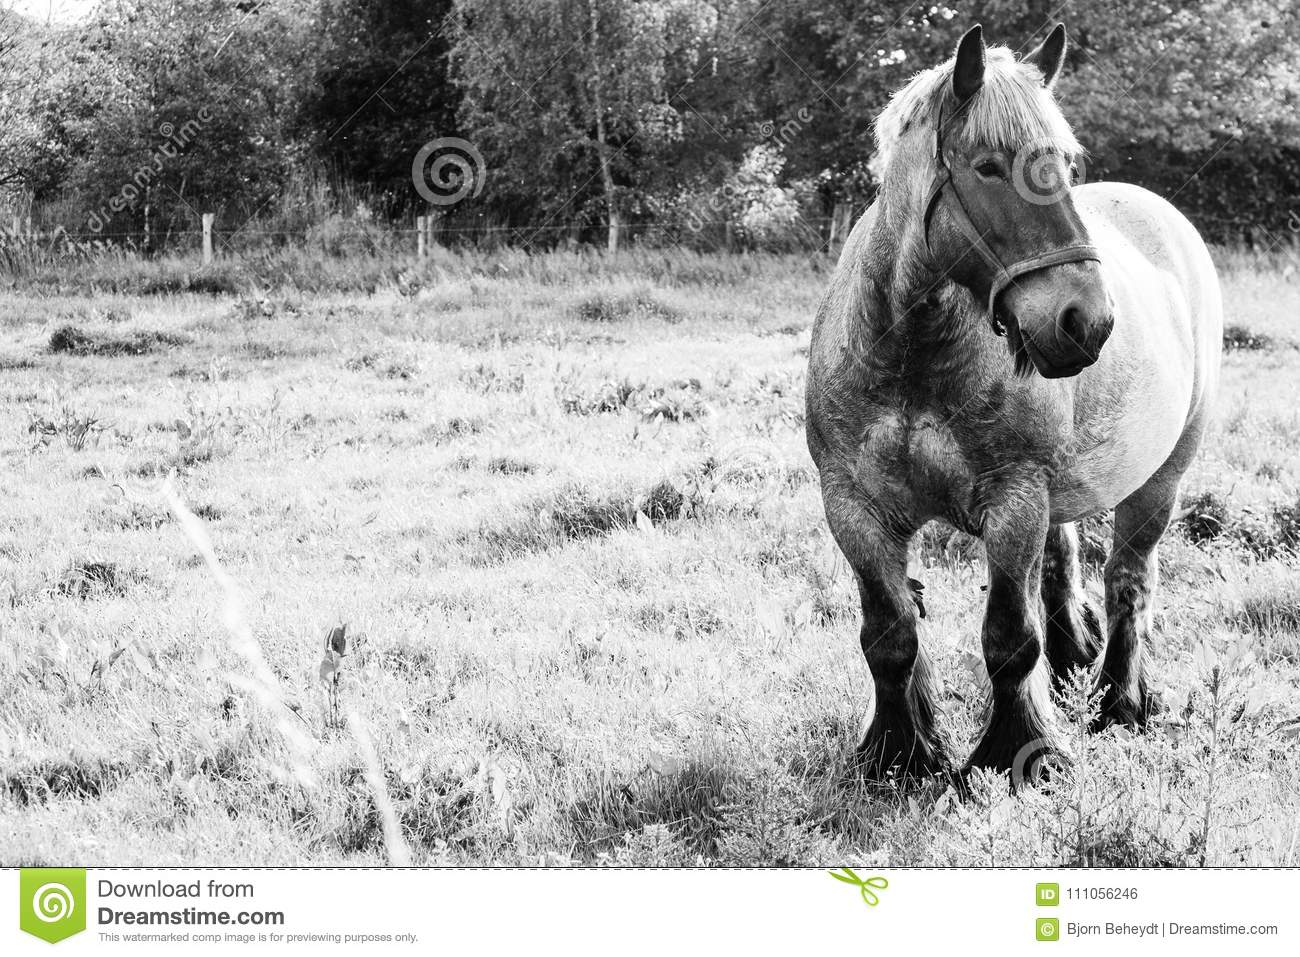 European Wild Horses In Black And White Stock Photo Image Of Equestrian Animal 111056246